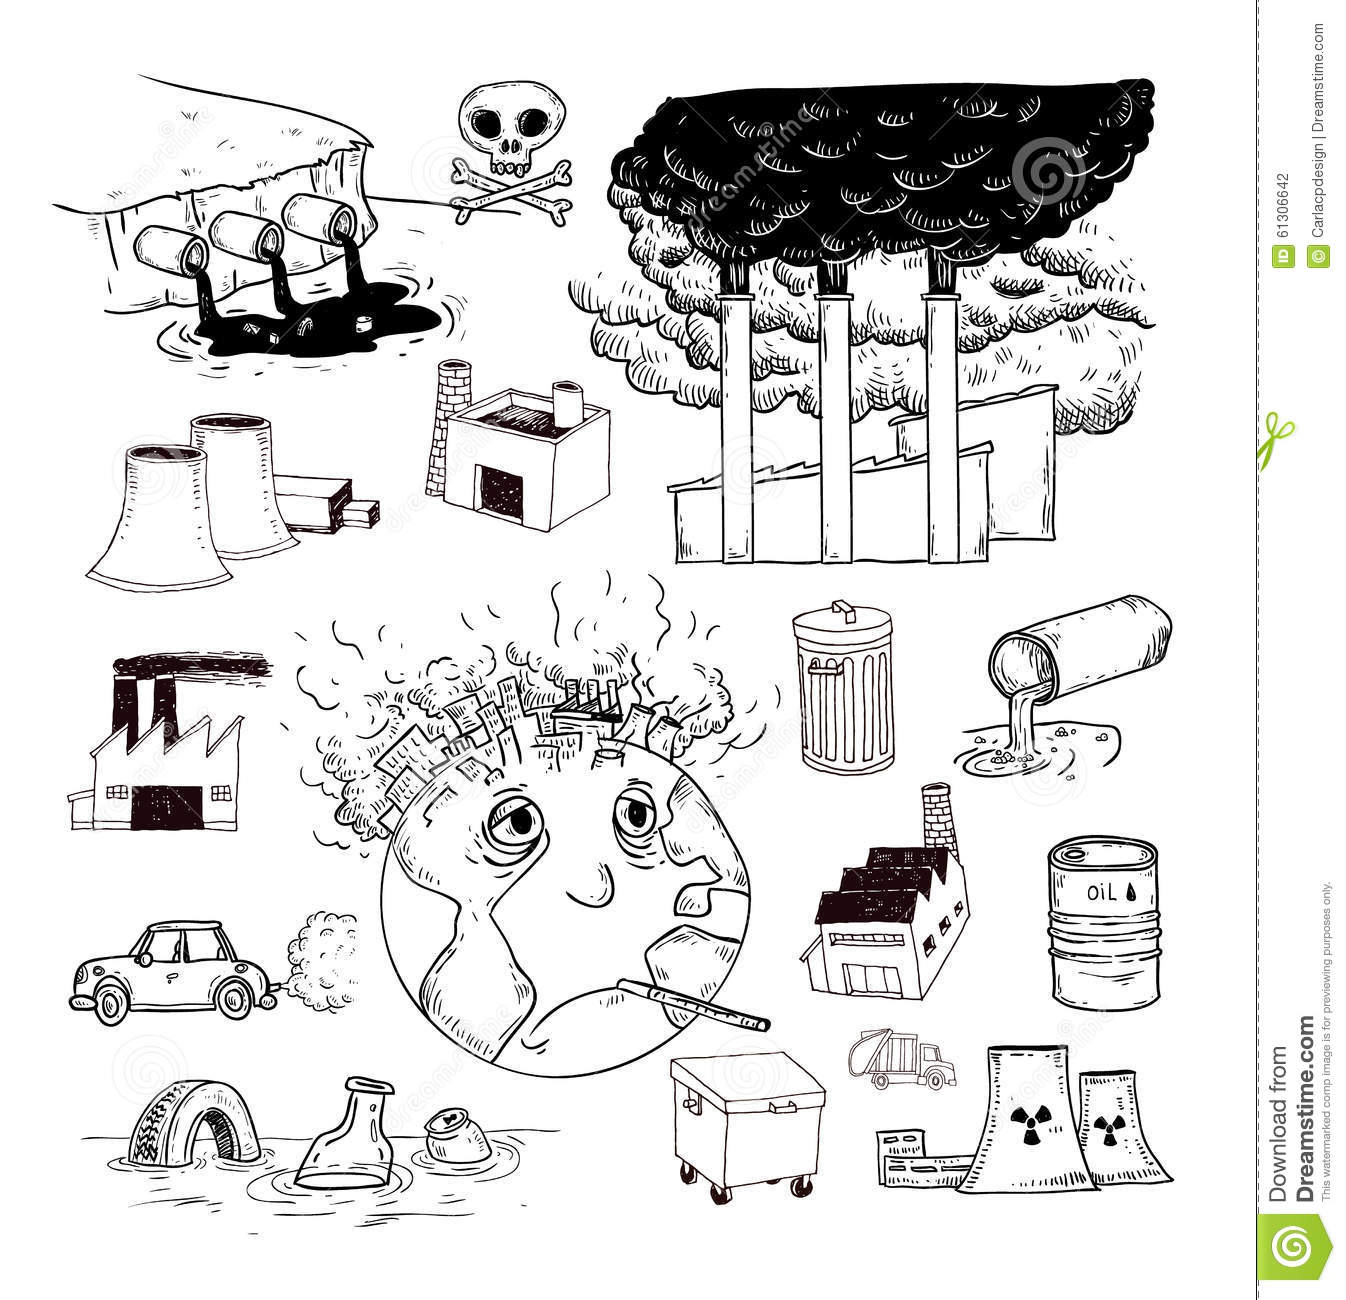 Air pollution clipart black and white 11 » Clipart Station.